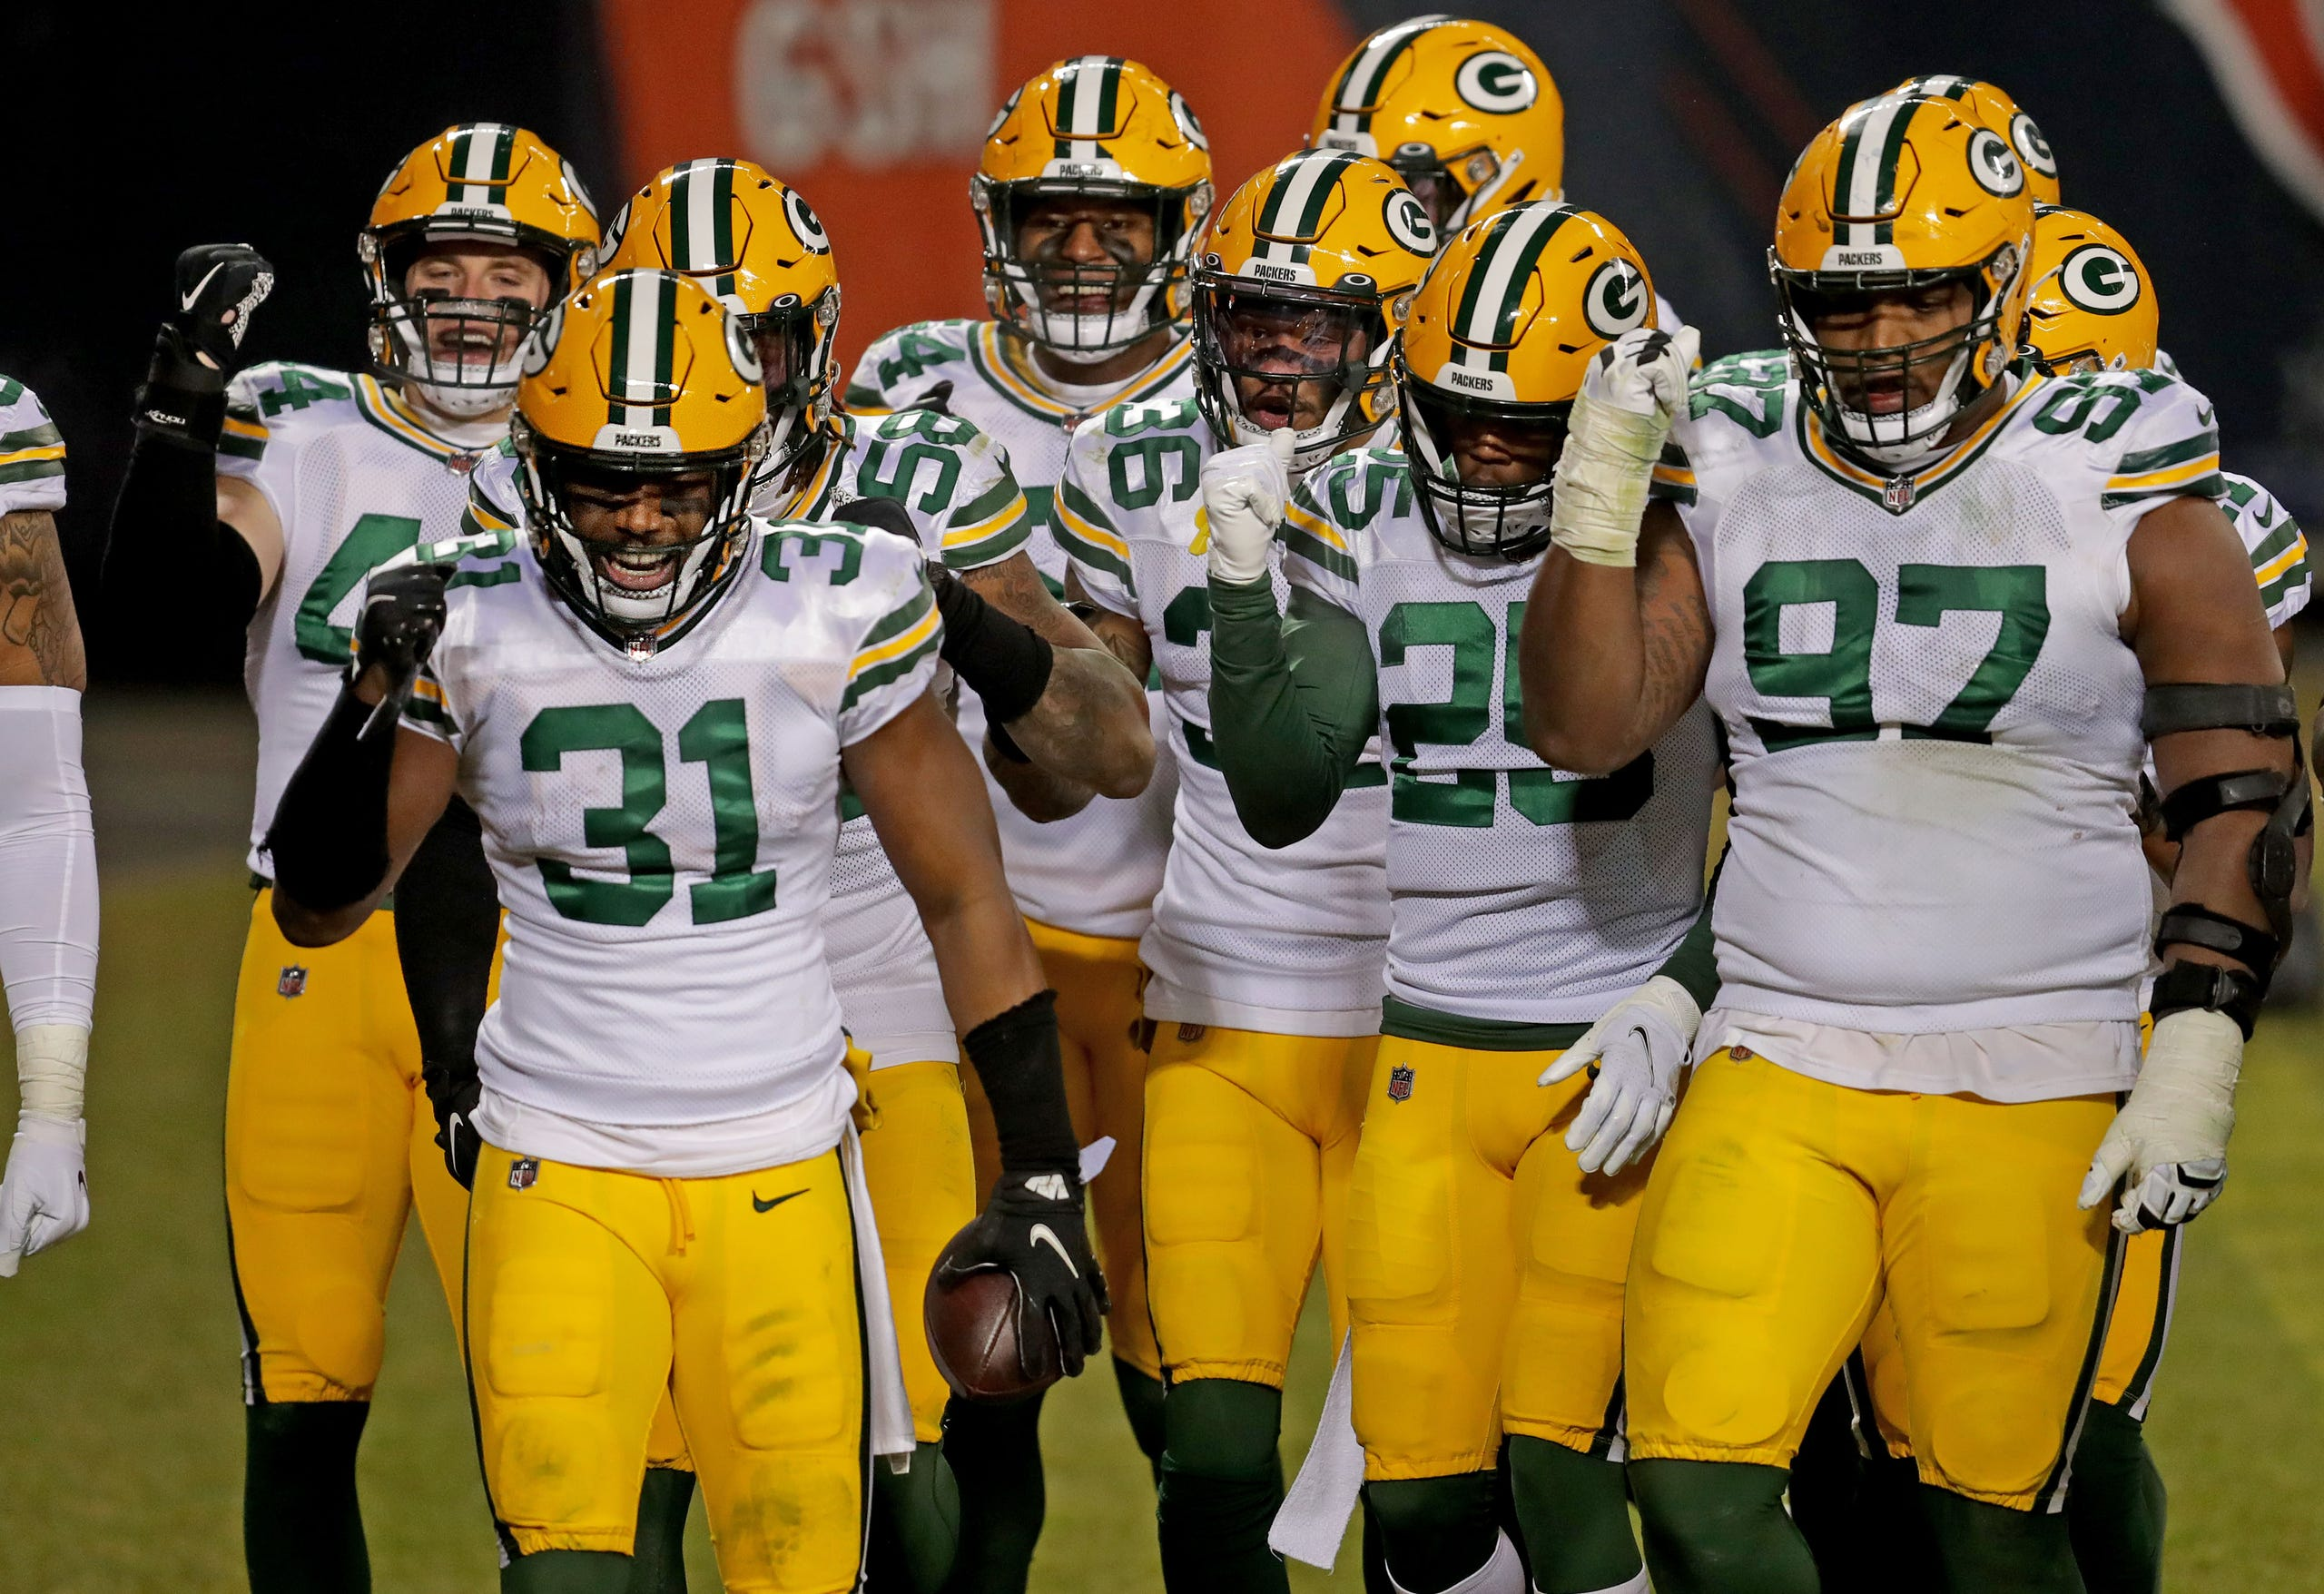 Packers Defense share similarities to 2010 Super Bowl Team